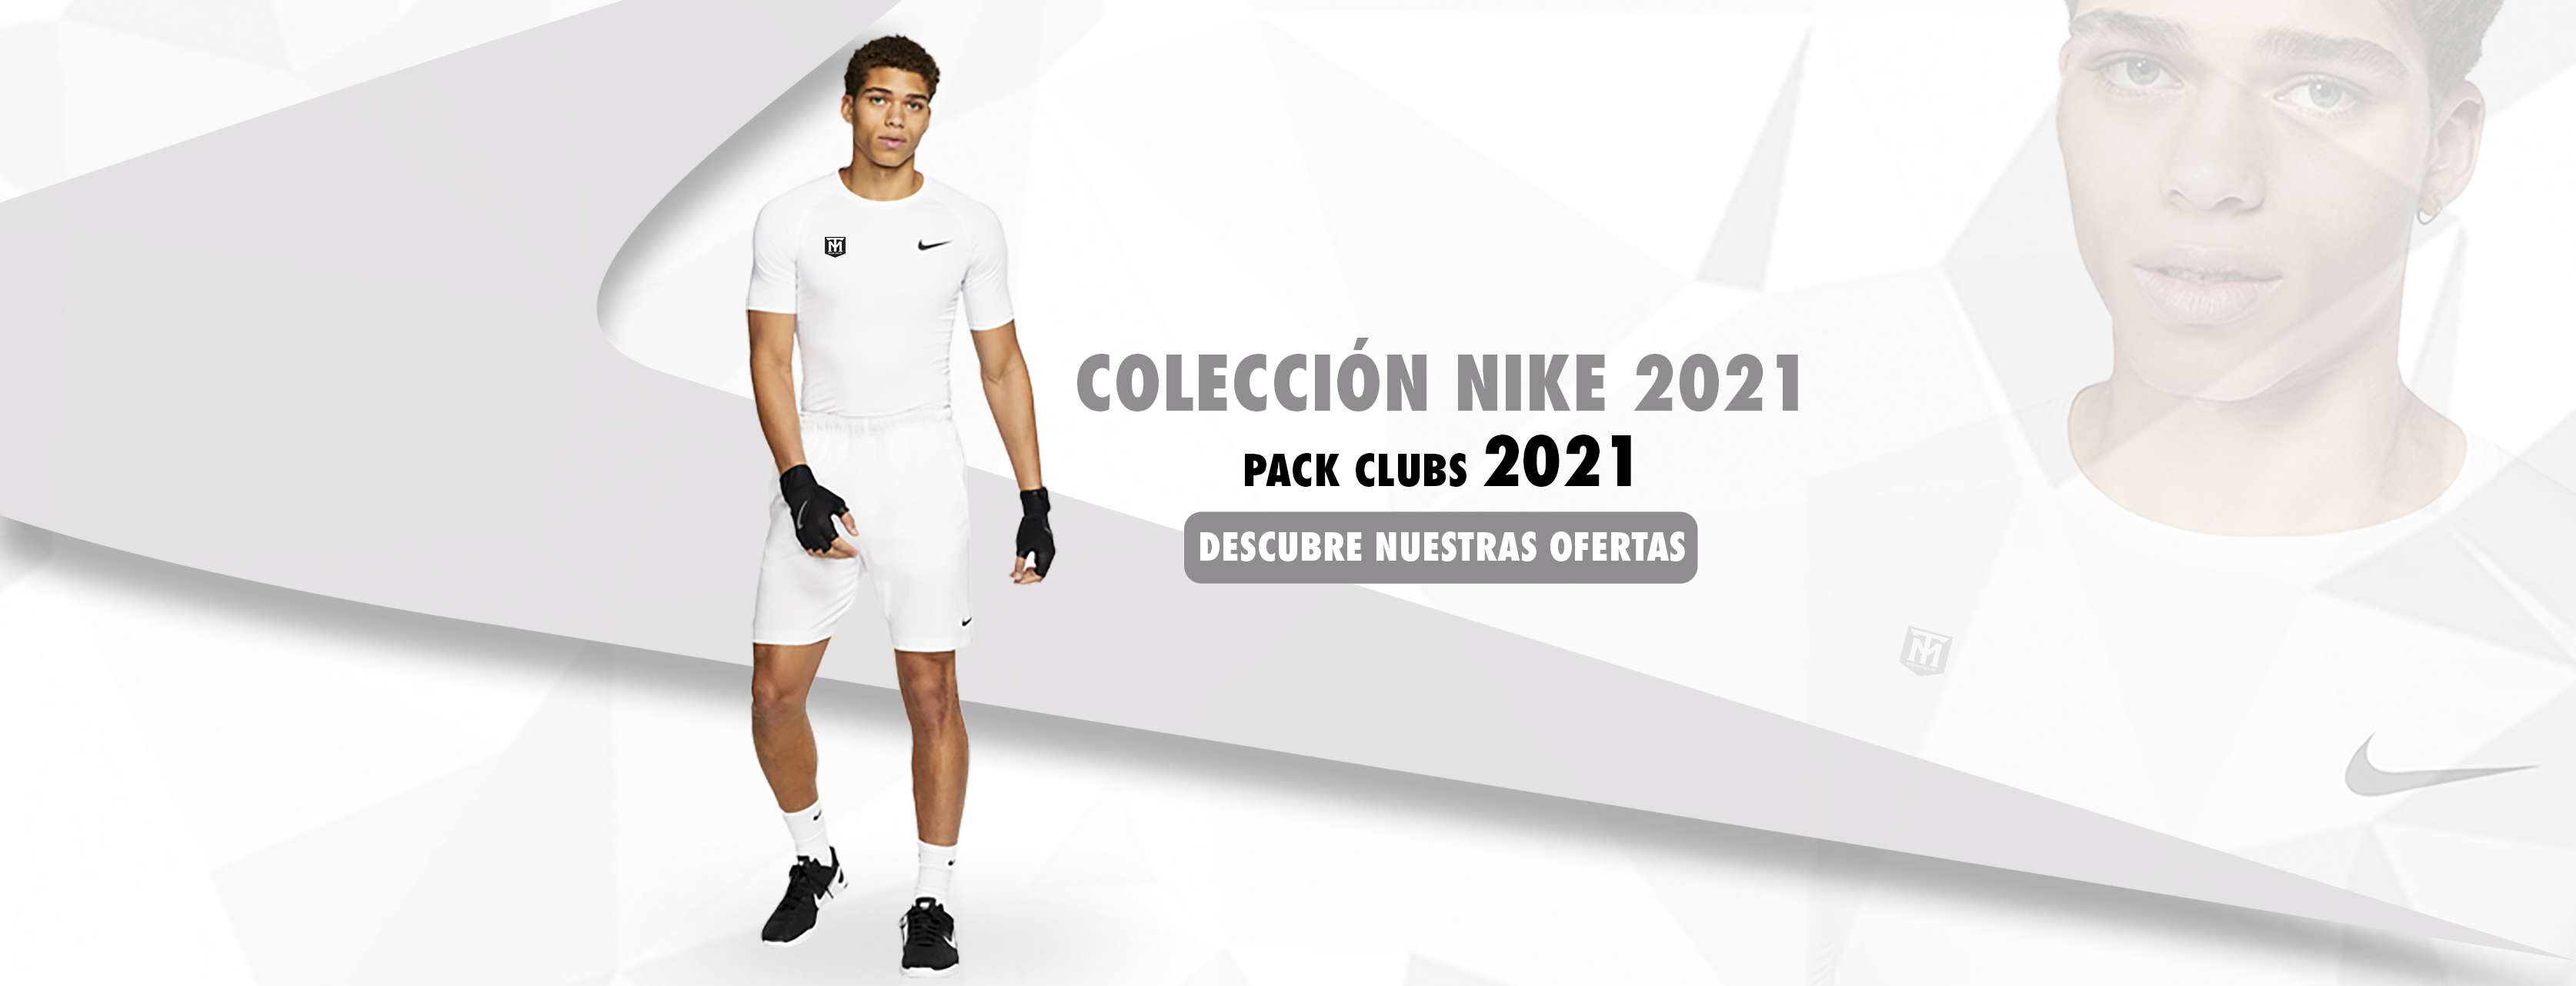 Collection Nike 2020